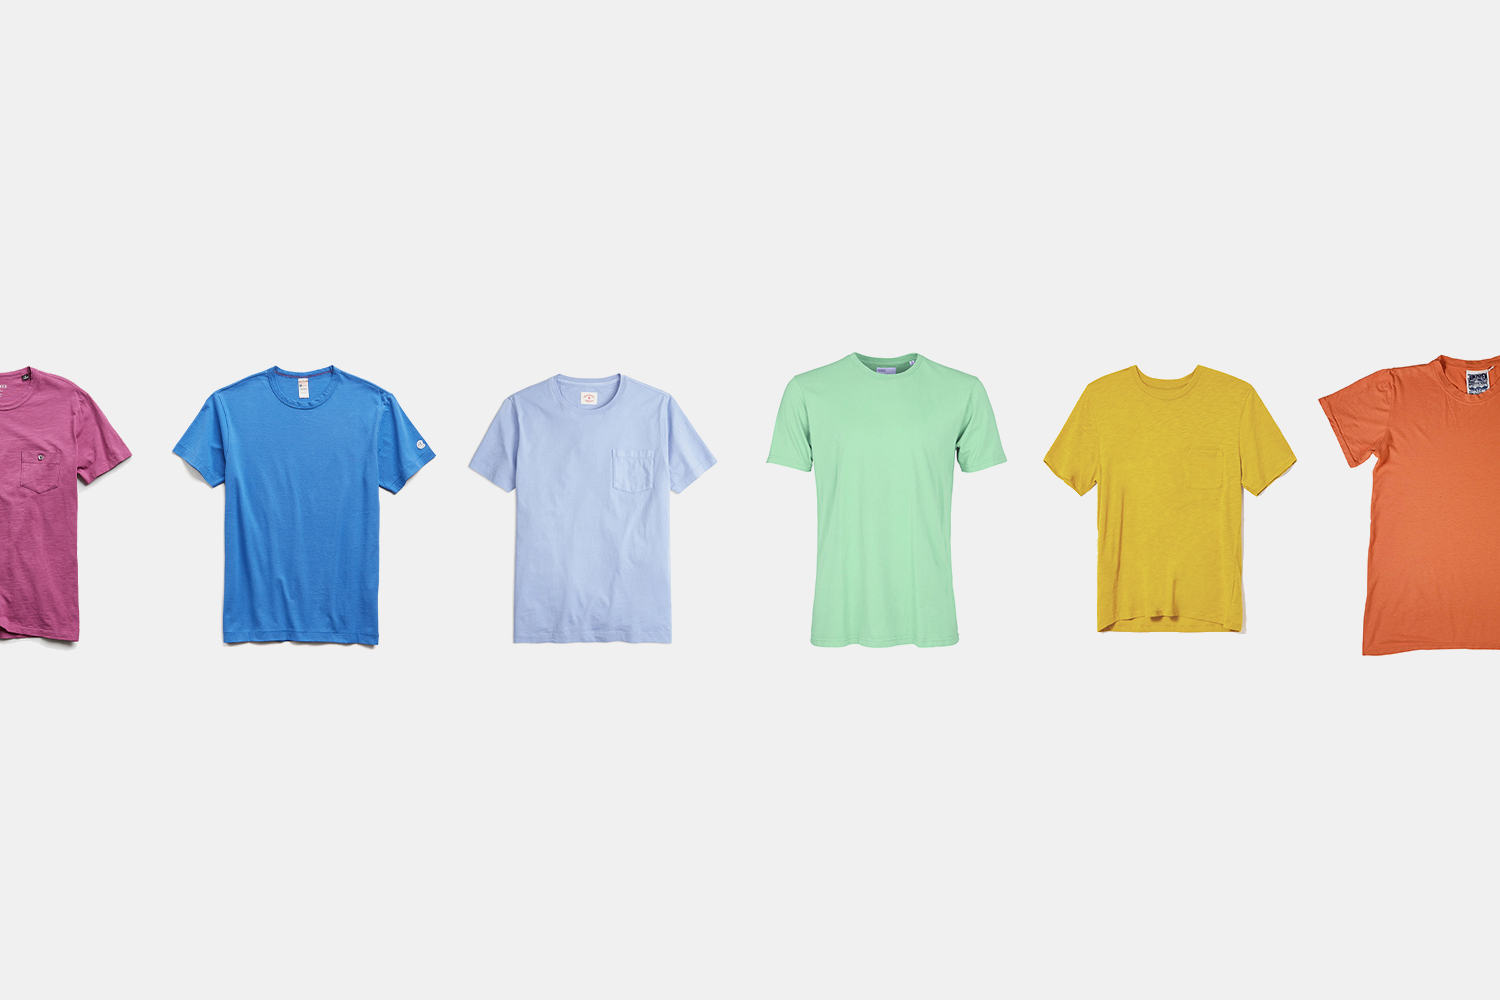 Searching for the Perfect Colored T-Shirt